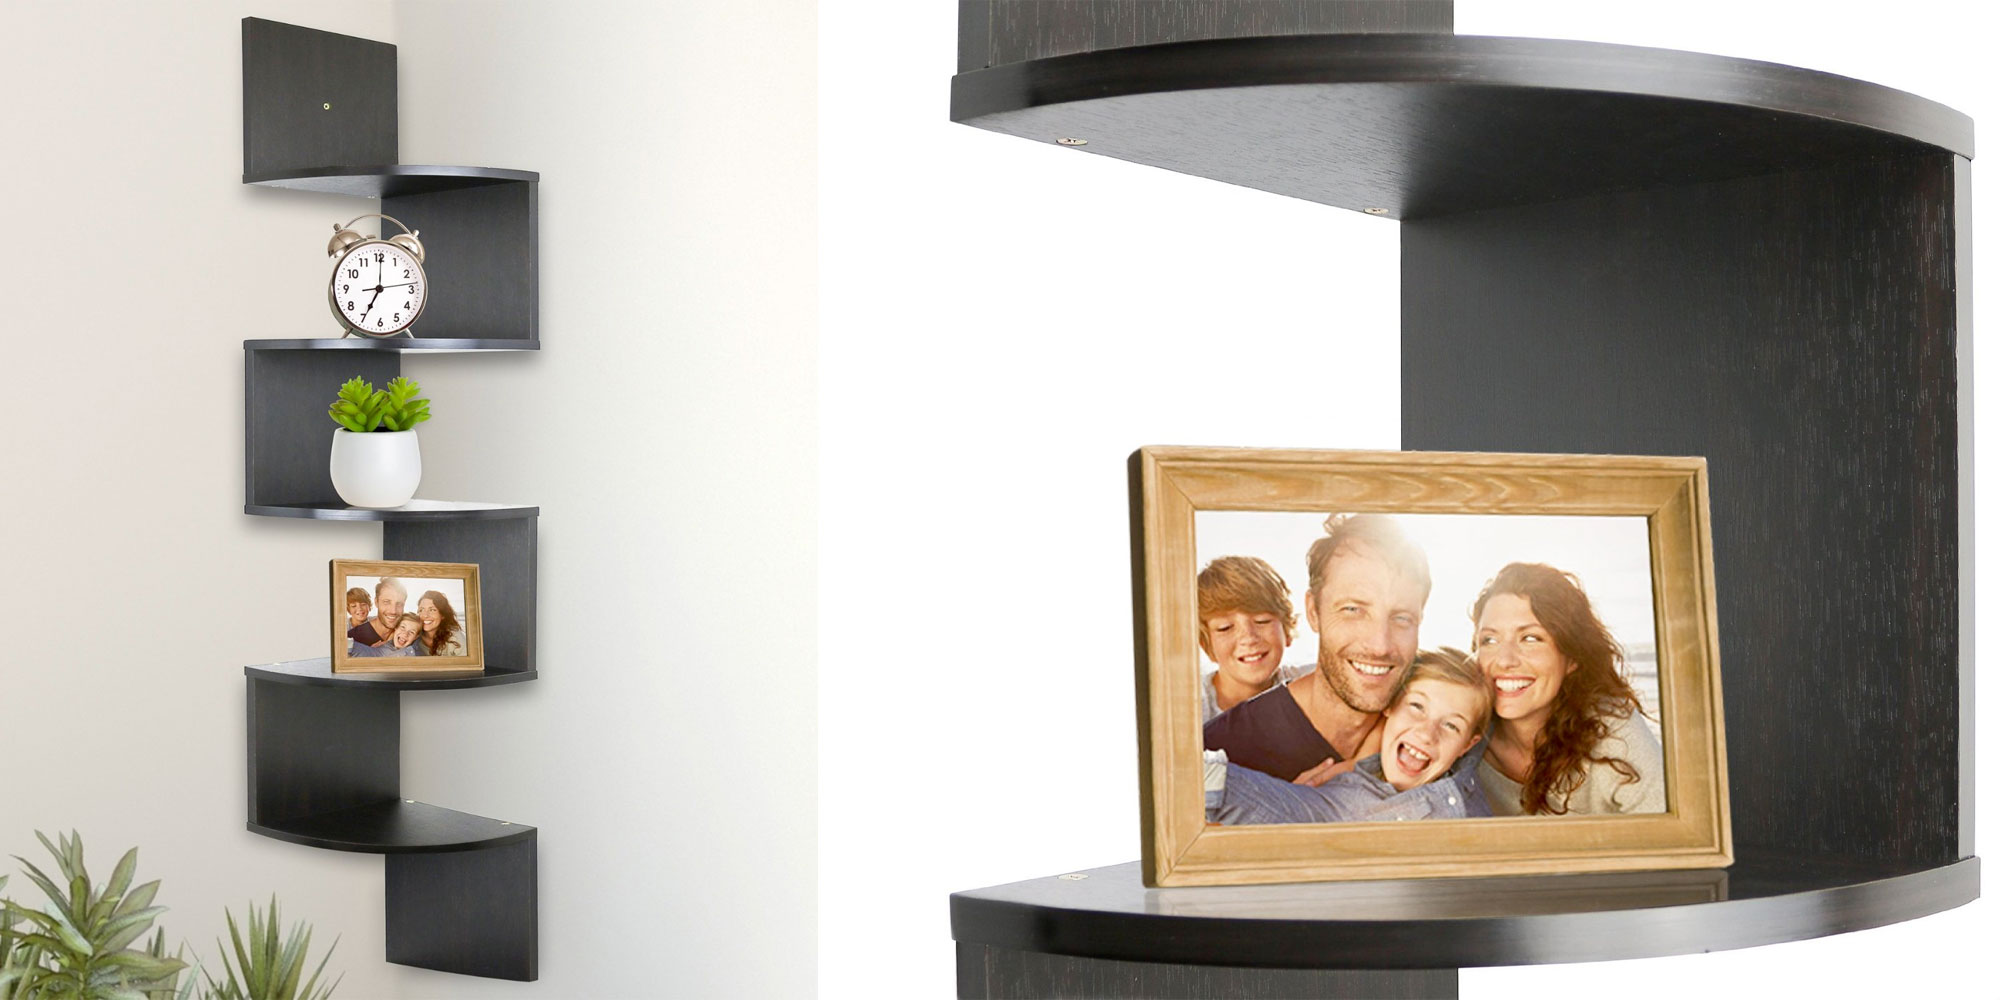 This corner shelf is the perfect way to display your growing Funko Pop! collection & more for $15